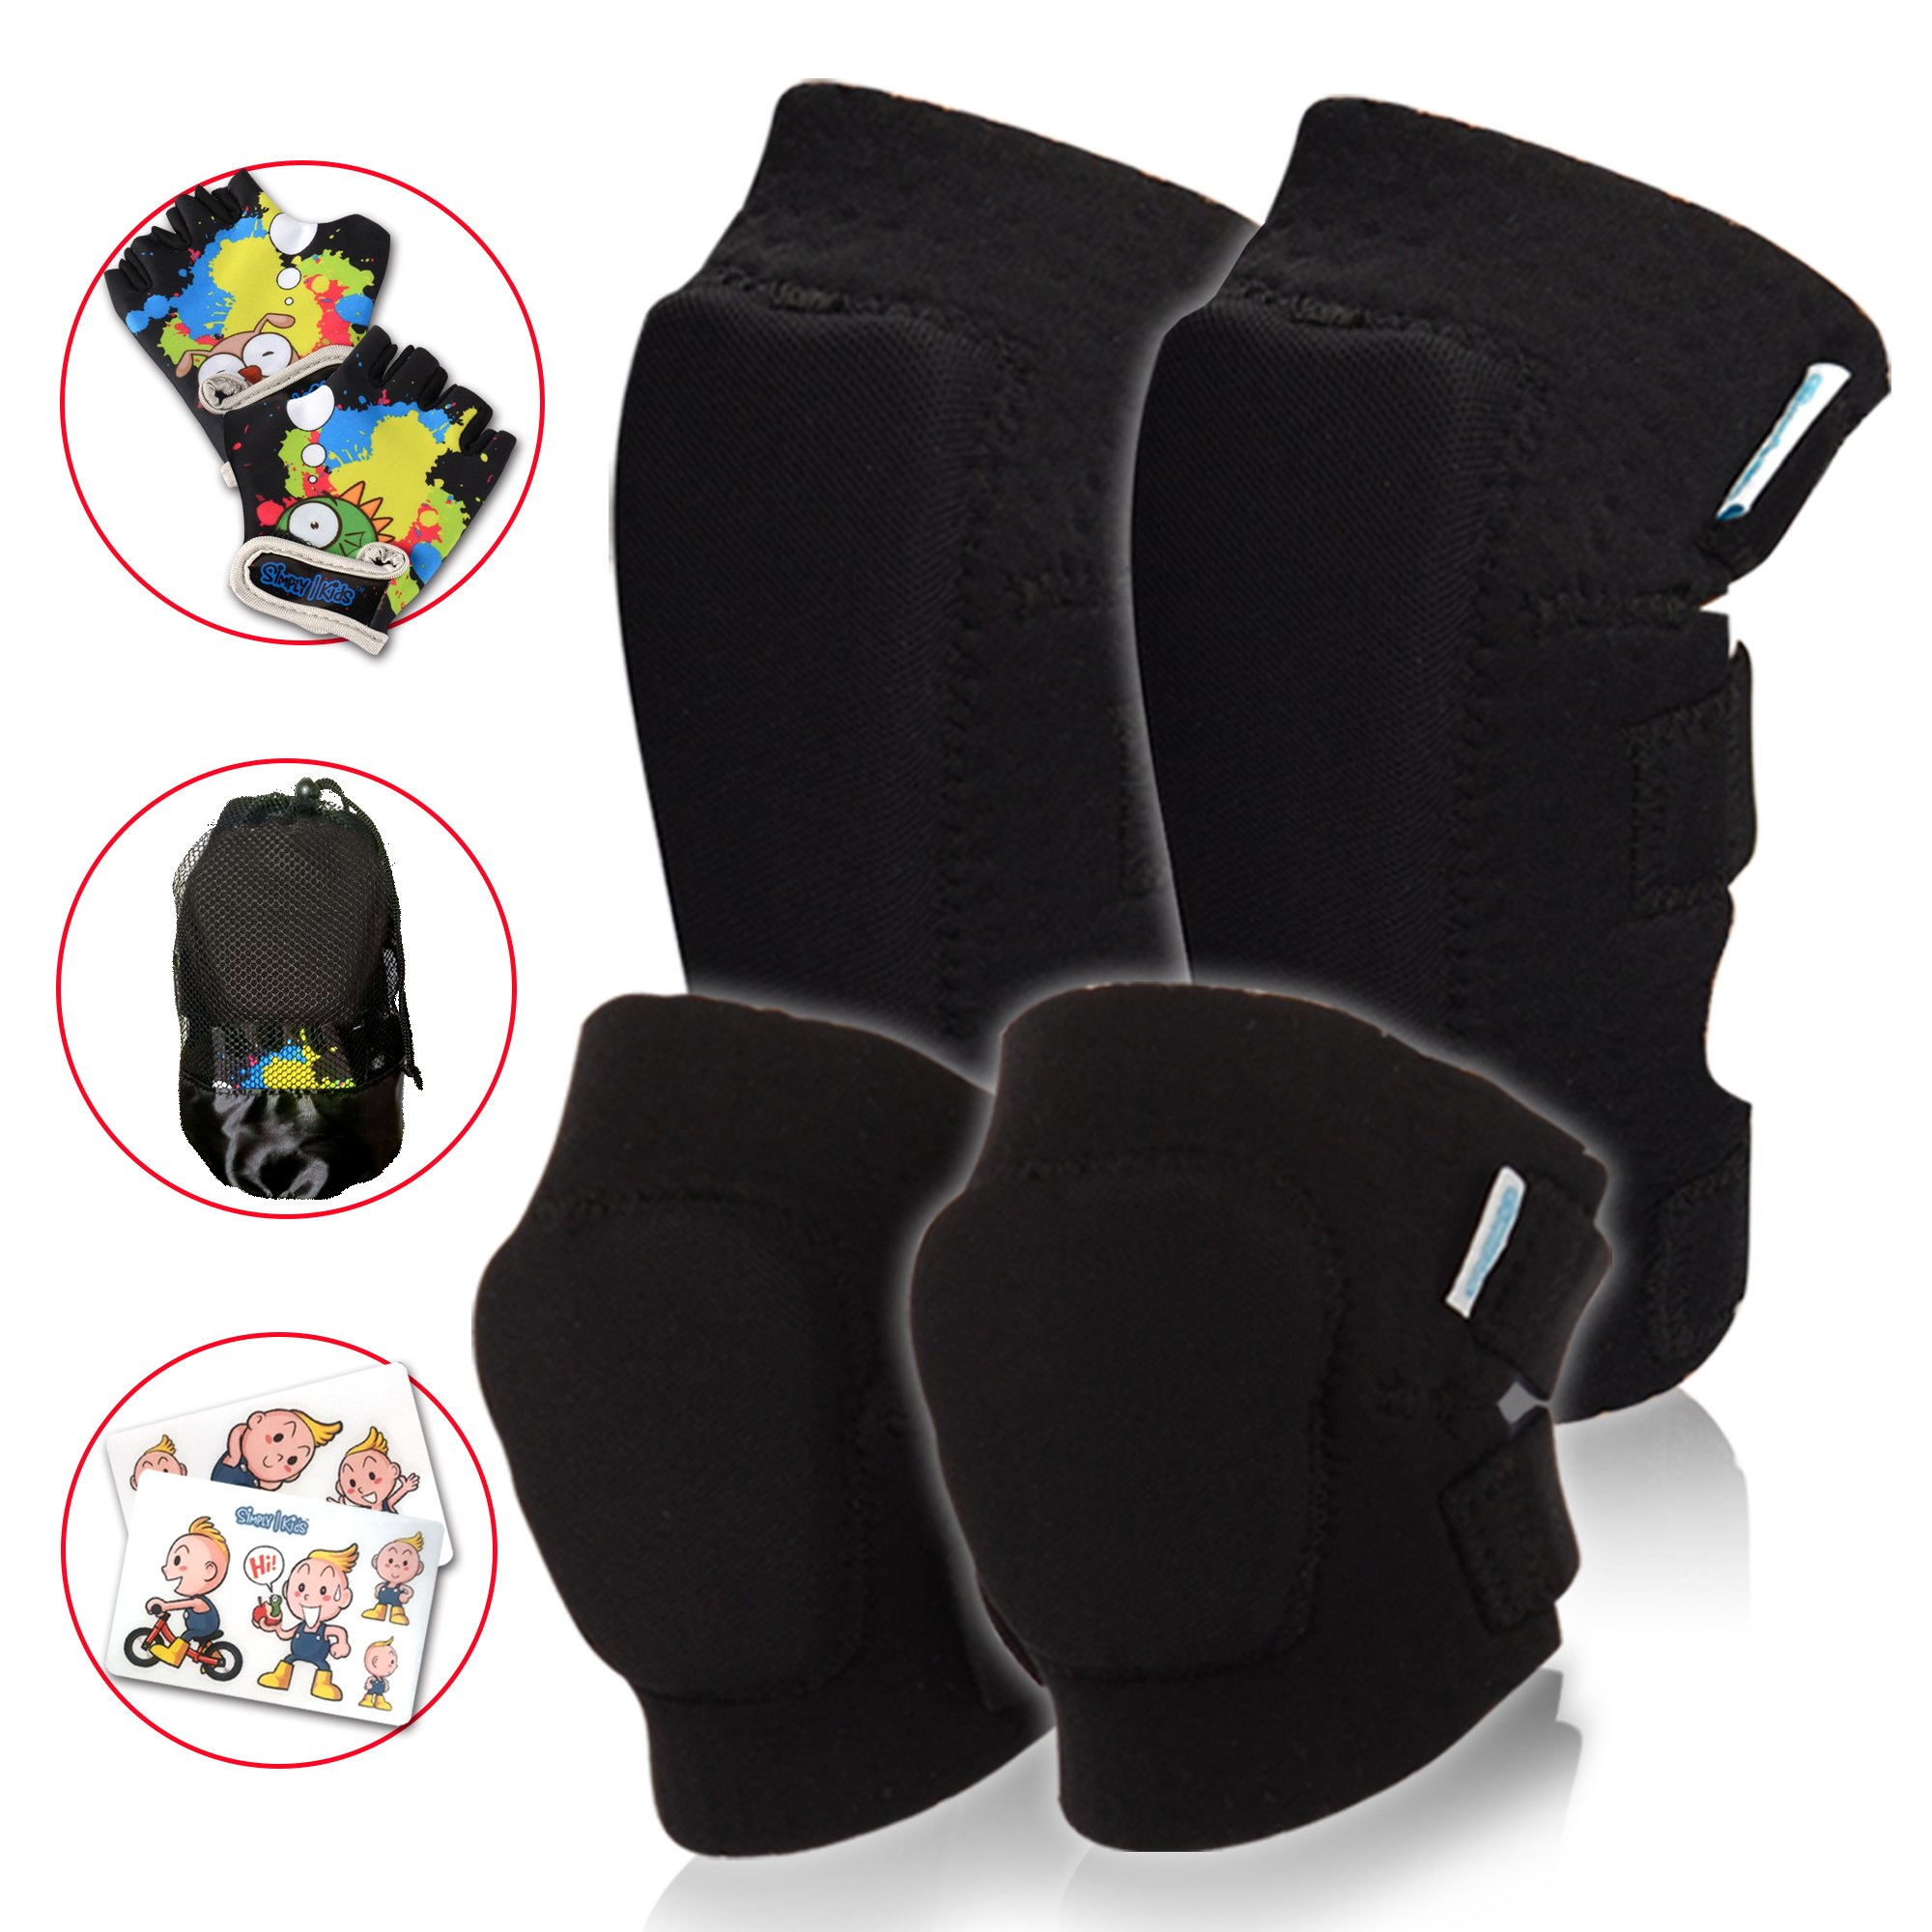 Kids Protective Gear Set | Toddler Knee And Elbow Pads Plus Bike Gloves | For Roller Skating, Cycling, Bike, Rollerblading, Scooter, Skateboarding, Bicycle, Inline Skating For Child Boys And Girls